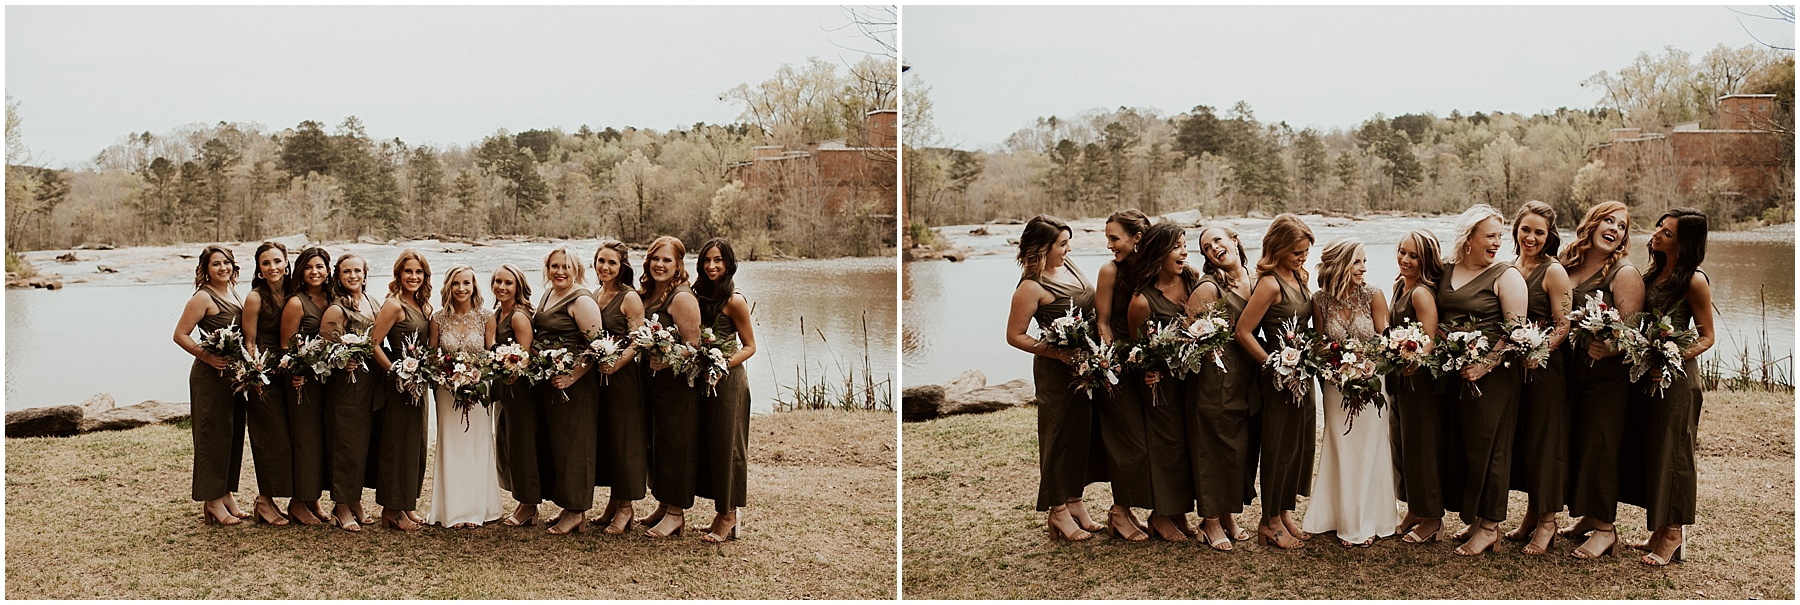 The_Mill_At_Yellow_River_Wedding025.JPG